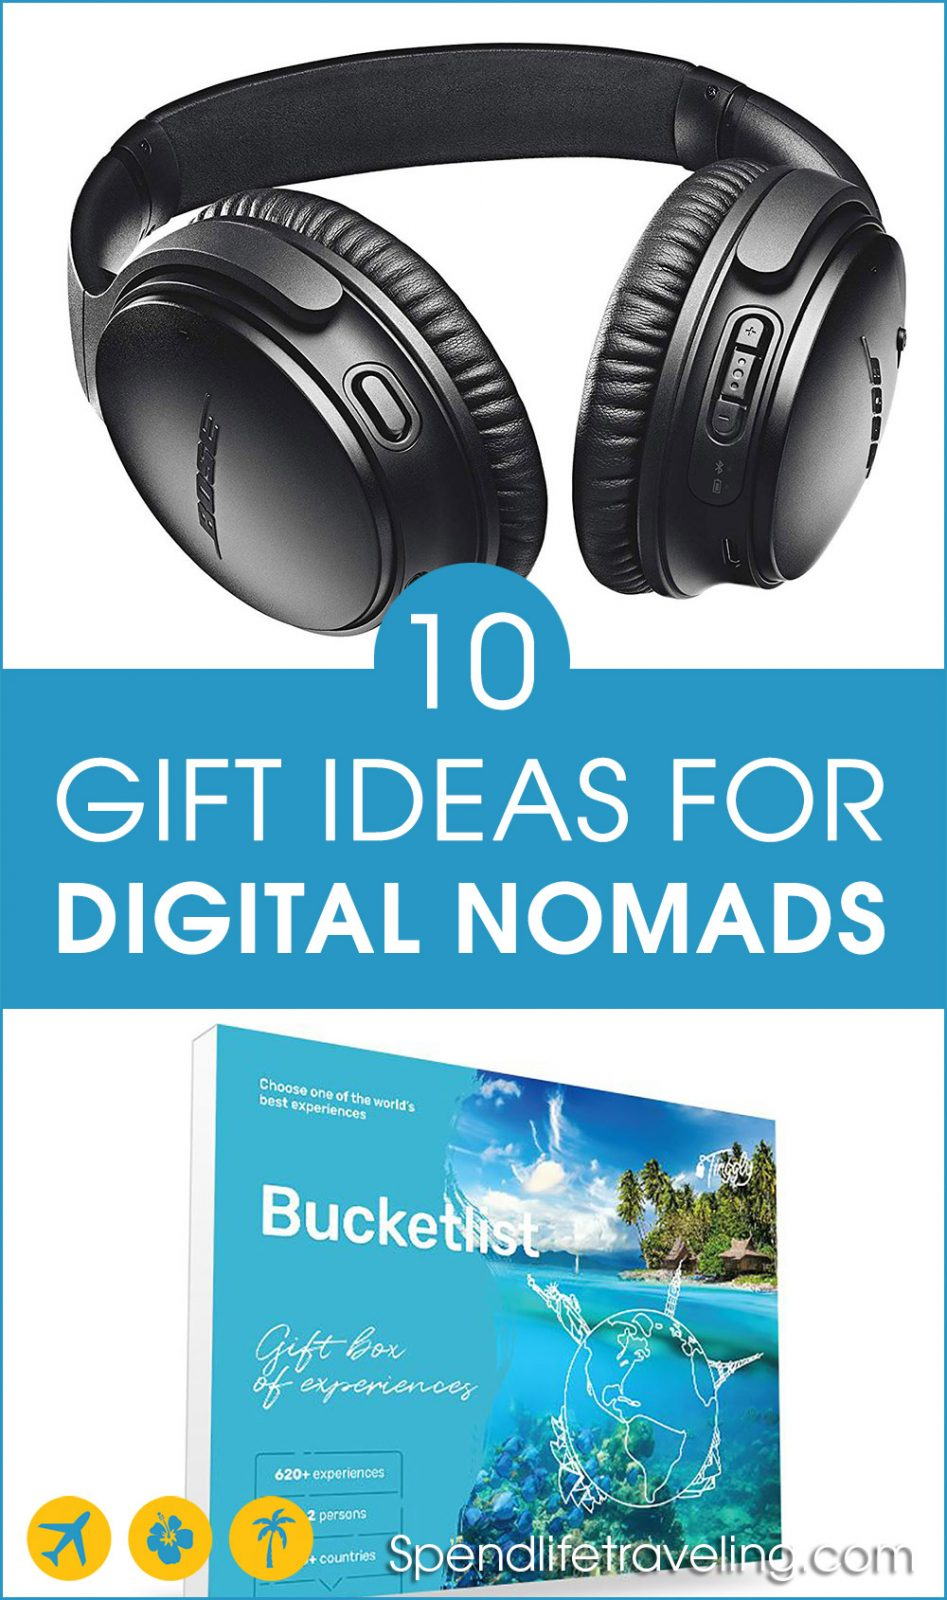 10 gift ideas that are perfect for digital nomads and most business travelers and travel lovers. From experiences to electronics, there is a little something on this list for everyone. #digitalnomad #travelgift #giftideas #nomadgifts